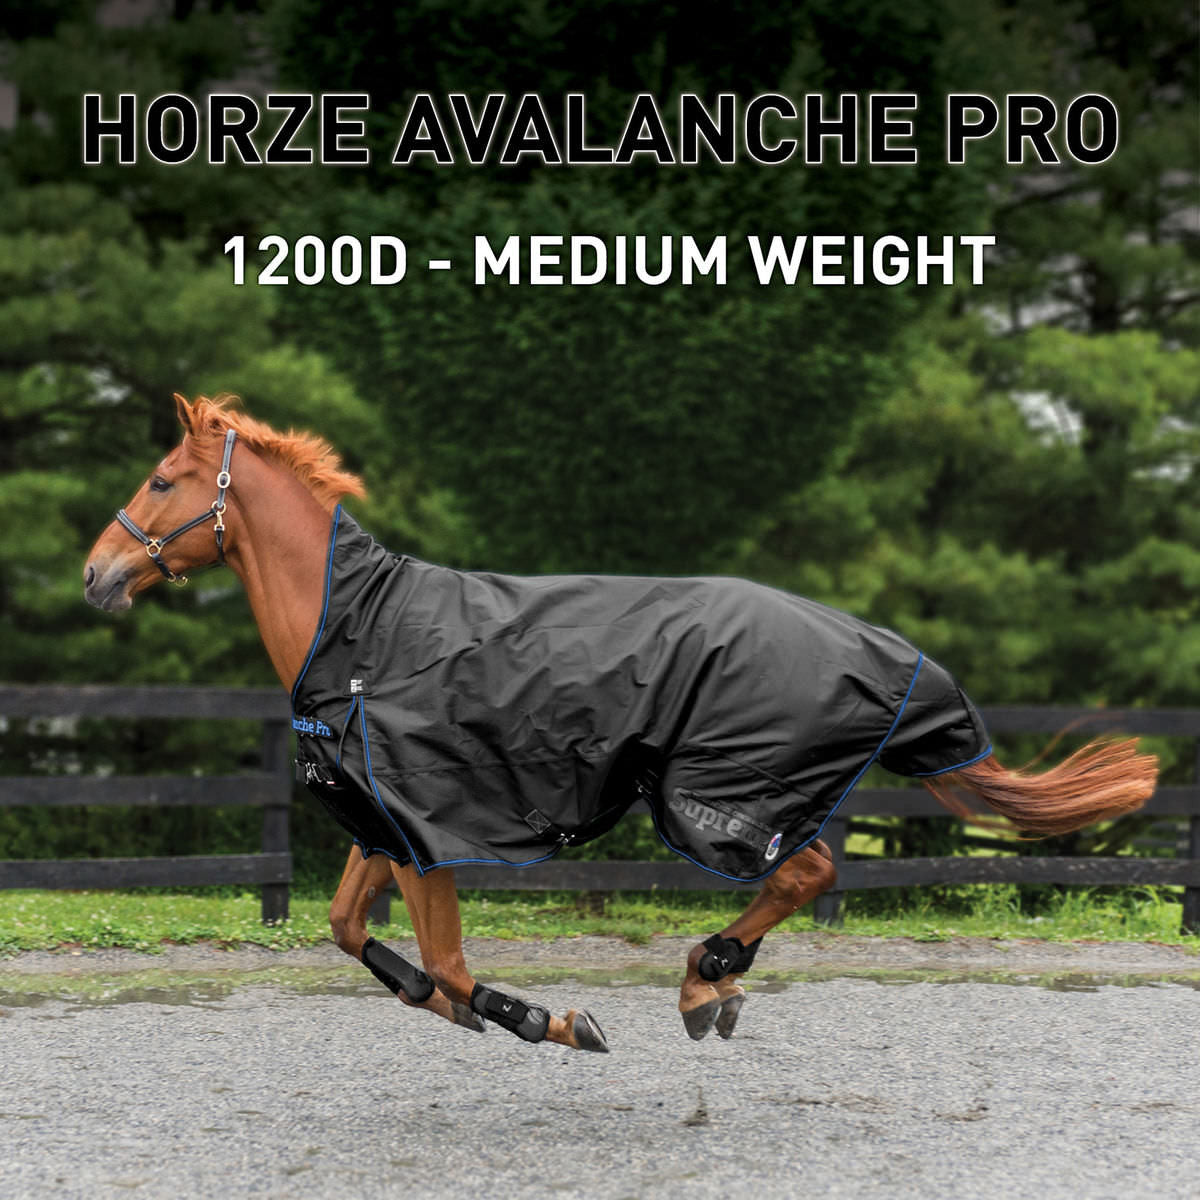 Couverture de mi-saison Supreme Avalanche 1200D Medium Weight Turnout - (Horze 24047)